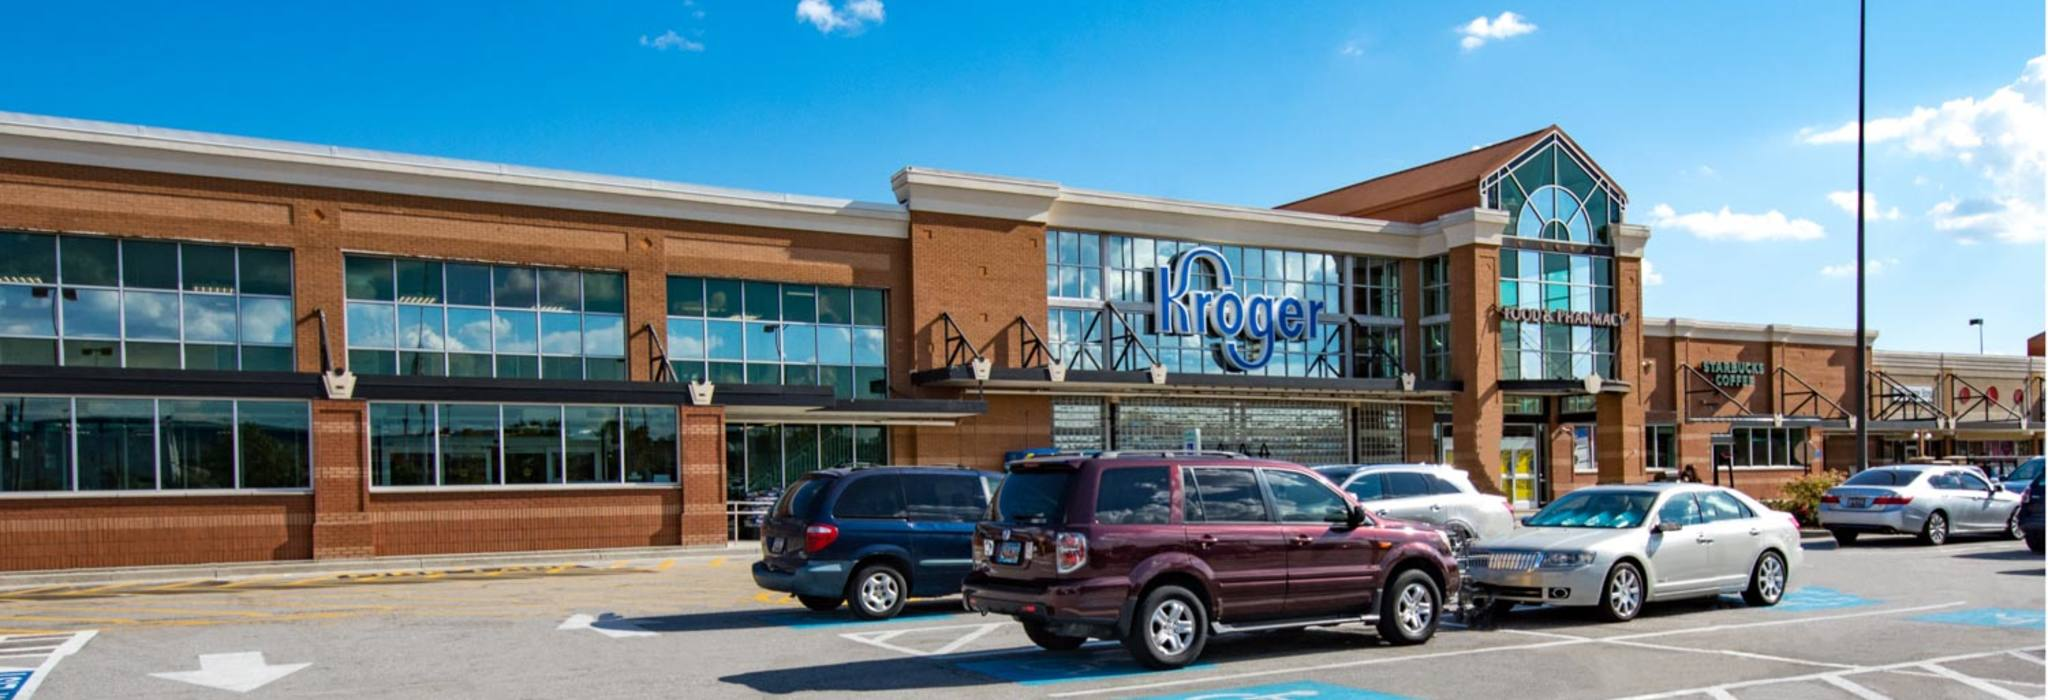 Columbia Sc Sparkleberry Square Retail Space First